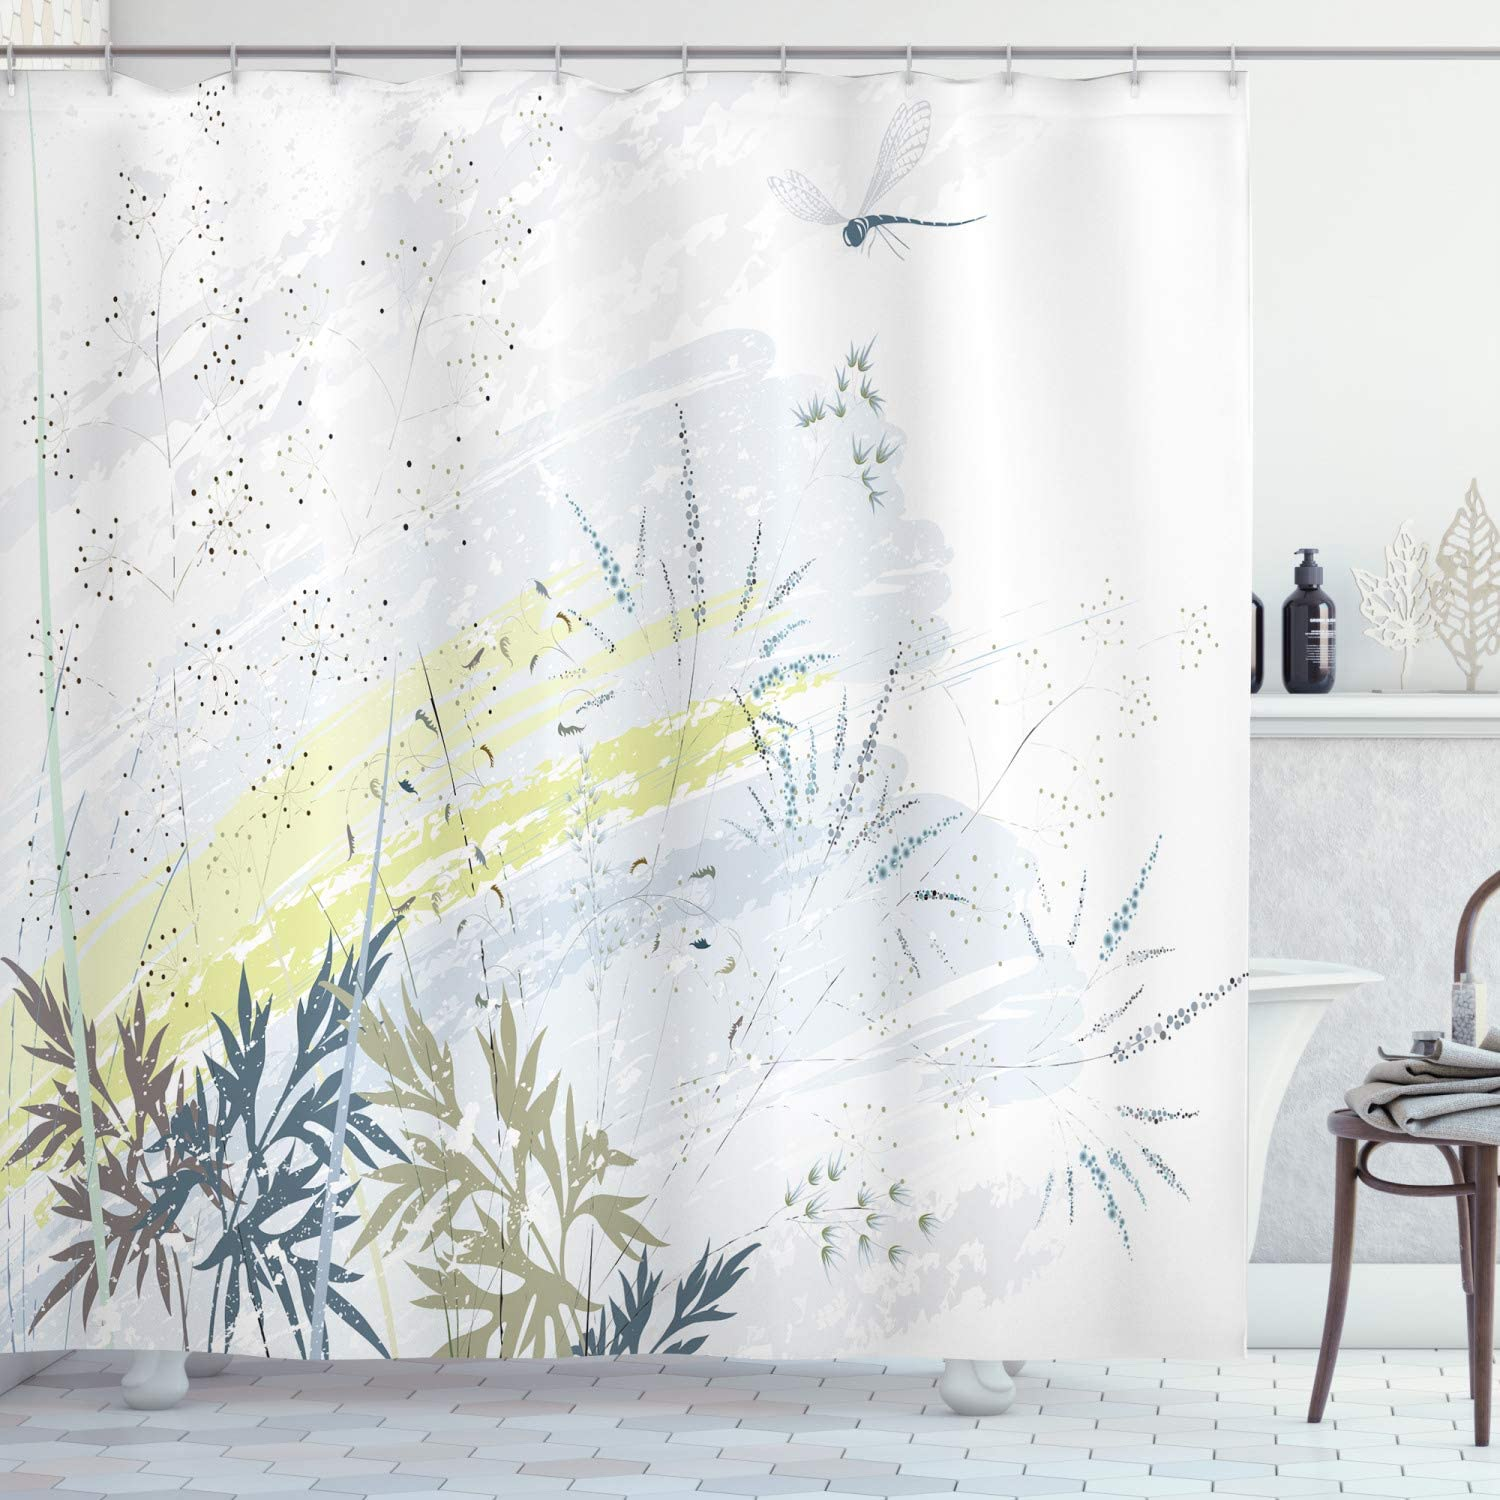 Ambesonne Dragonfly Shower Curtain, Wild Herb Grass Field Distressed Background with Dragonflies Lifestyle Graphic, Cloth Fabric Bathroom Decor Set with Hooks, 75